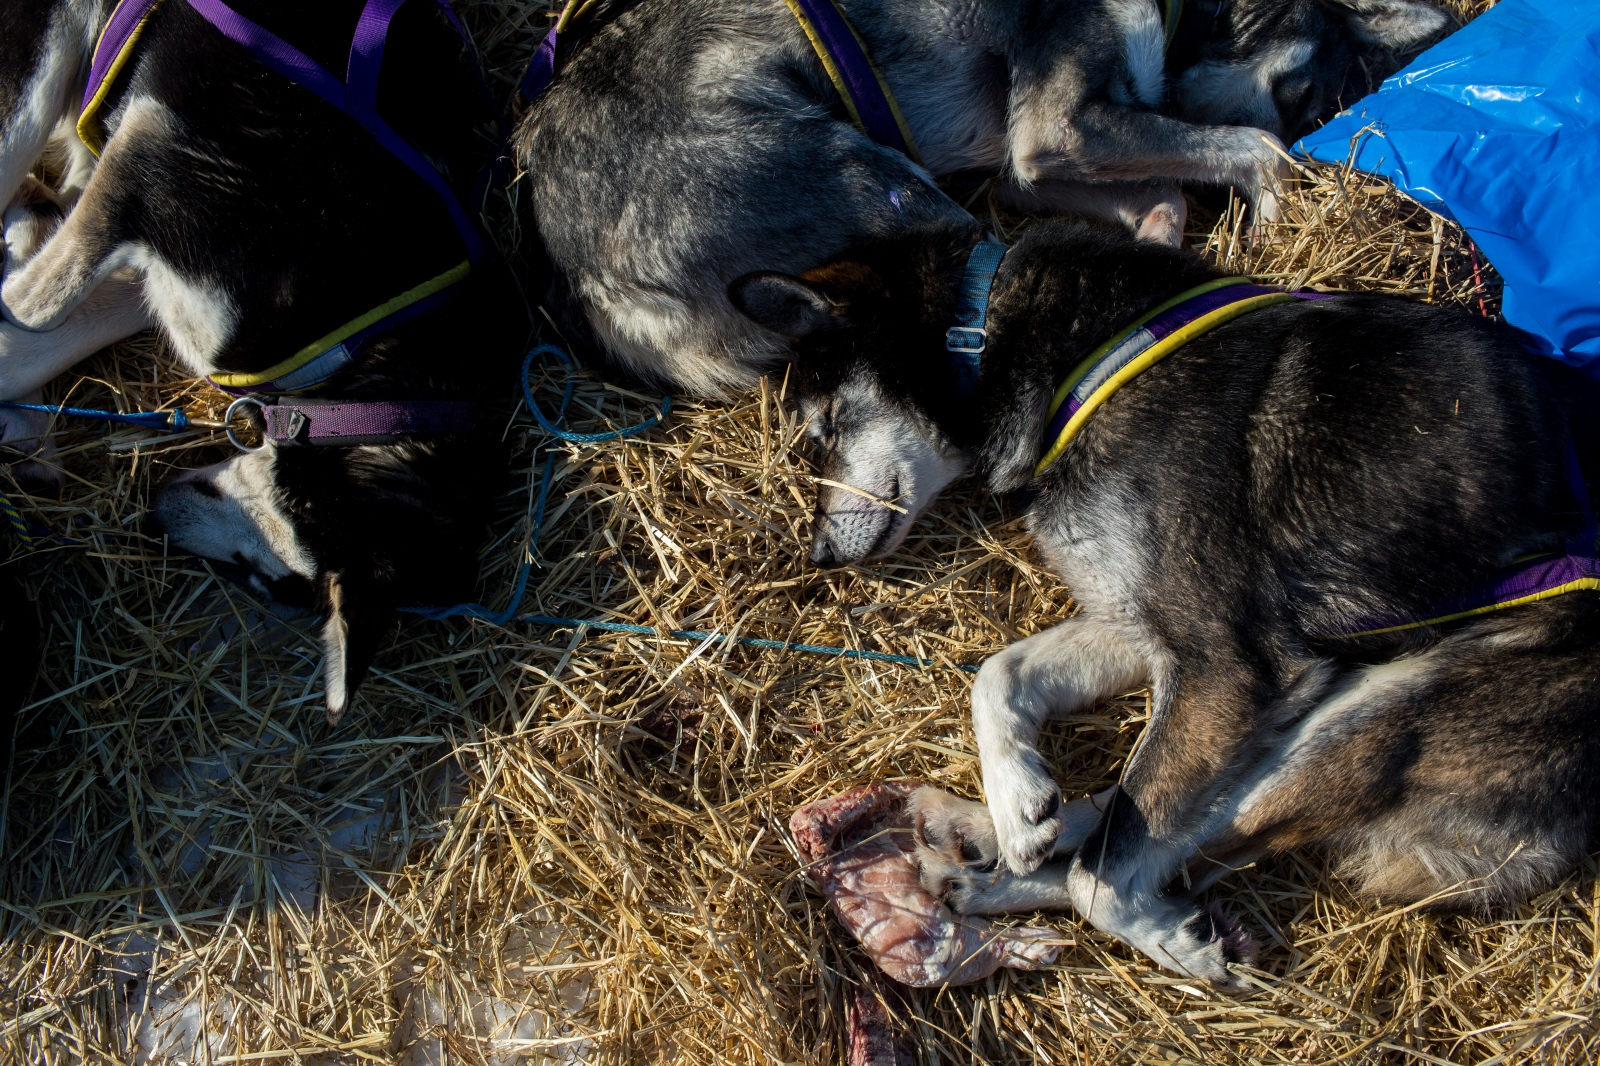 Dogs rest at the Unalakleet checkpoint during the 2016 Iditarod.